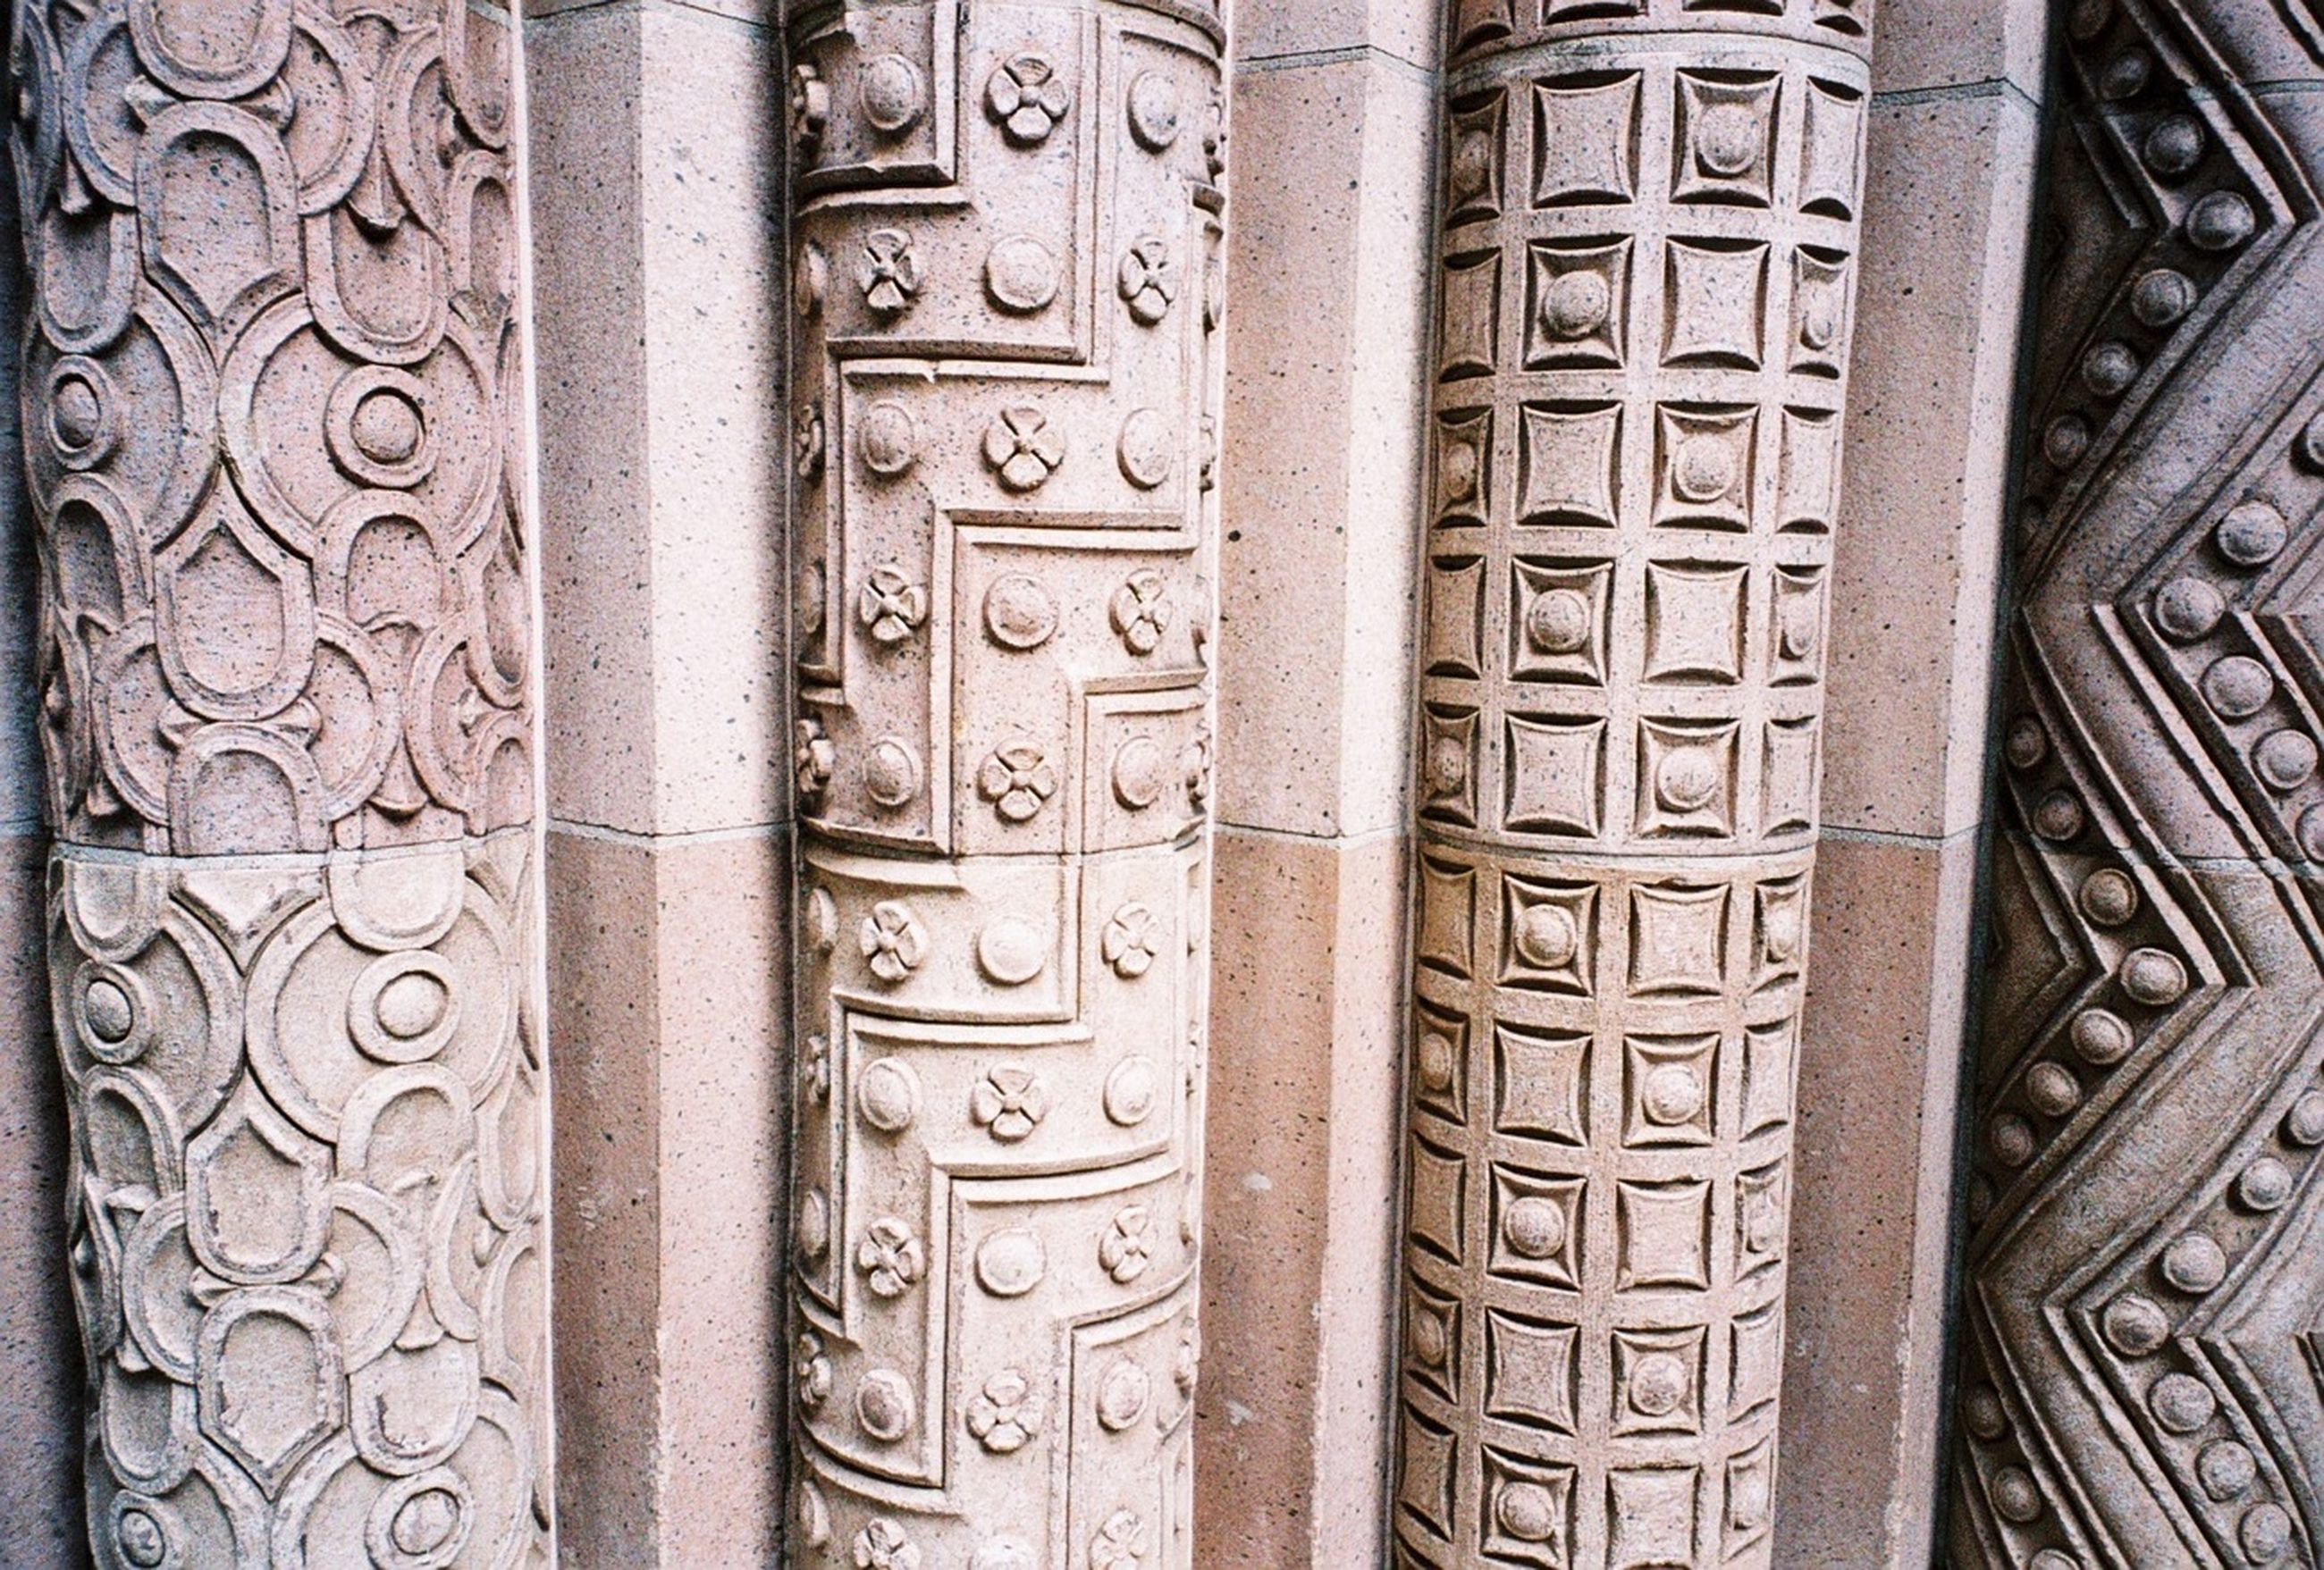 architecture, ornate, design, art and craft, full frame, pattern, built structure, backgrounds, art, carving - craft product, creativity, indoors, religion, low angle view, history, carving, building exterior, architectural feature, place of worship, close-up